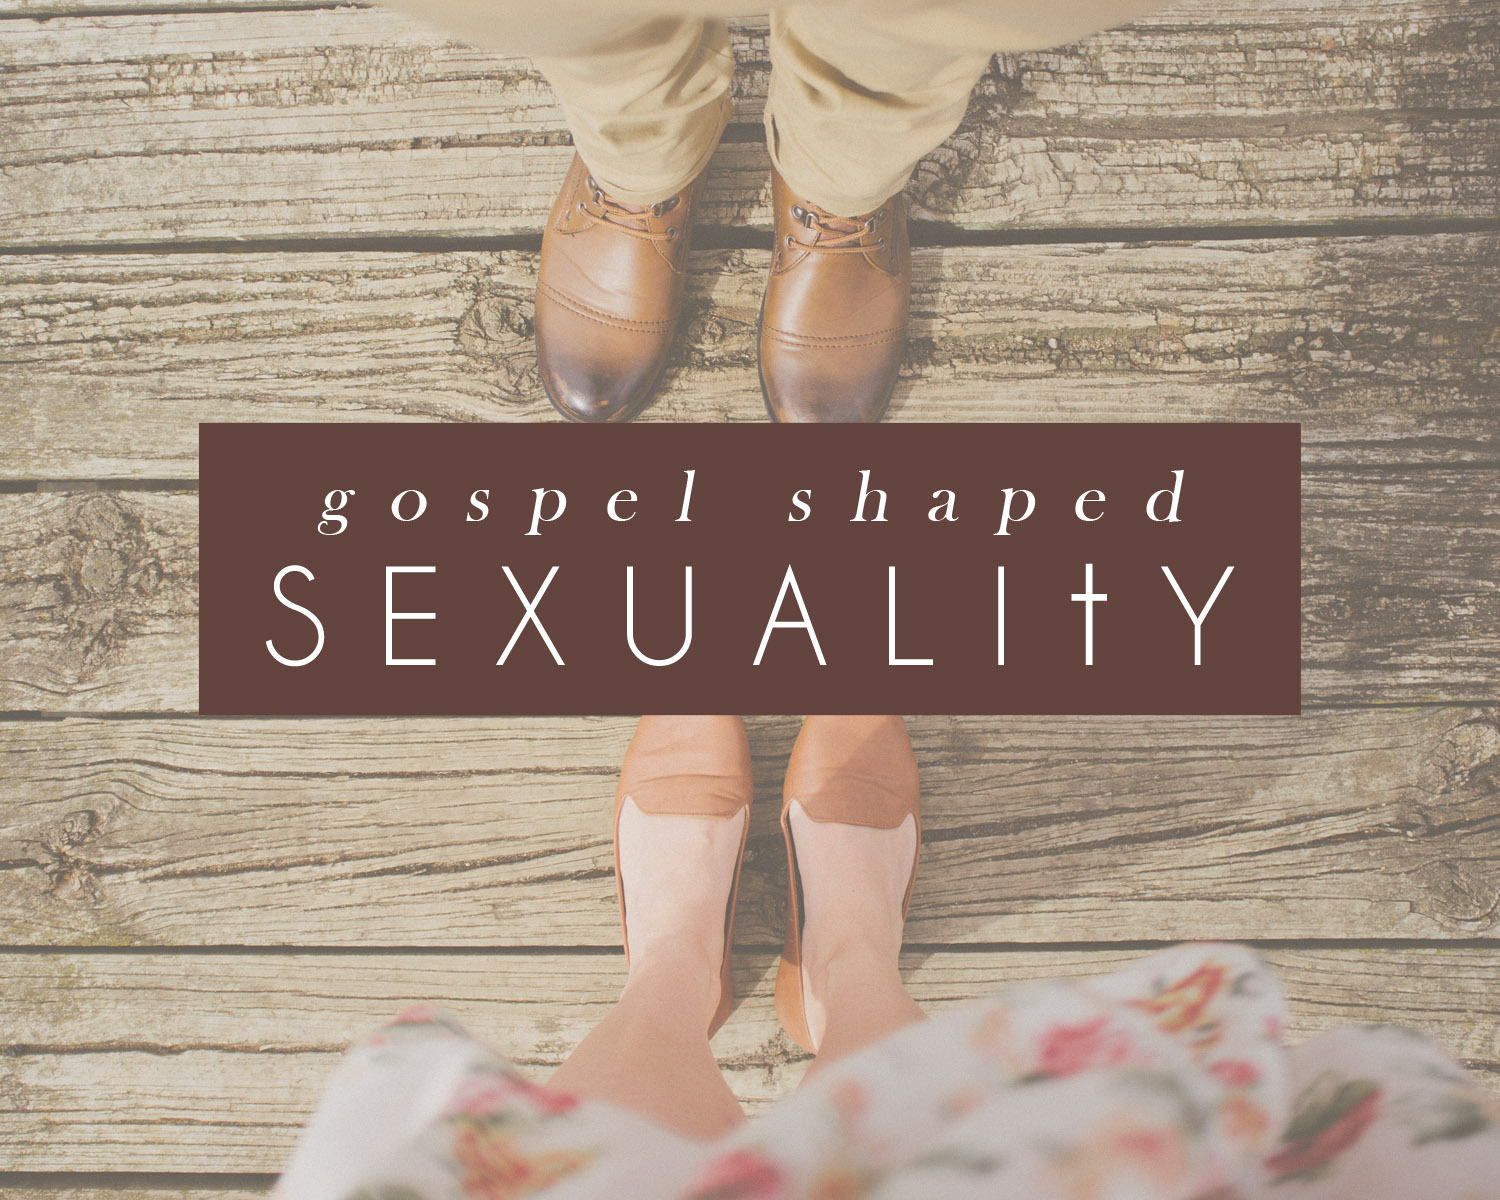 EQUIPPED 2018: Gospel Shaped Sexuality Study